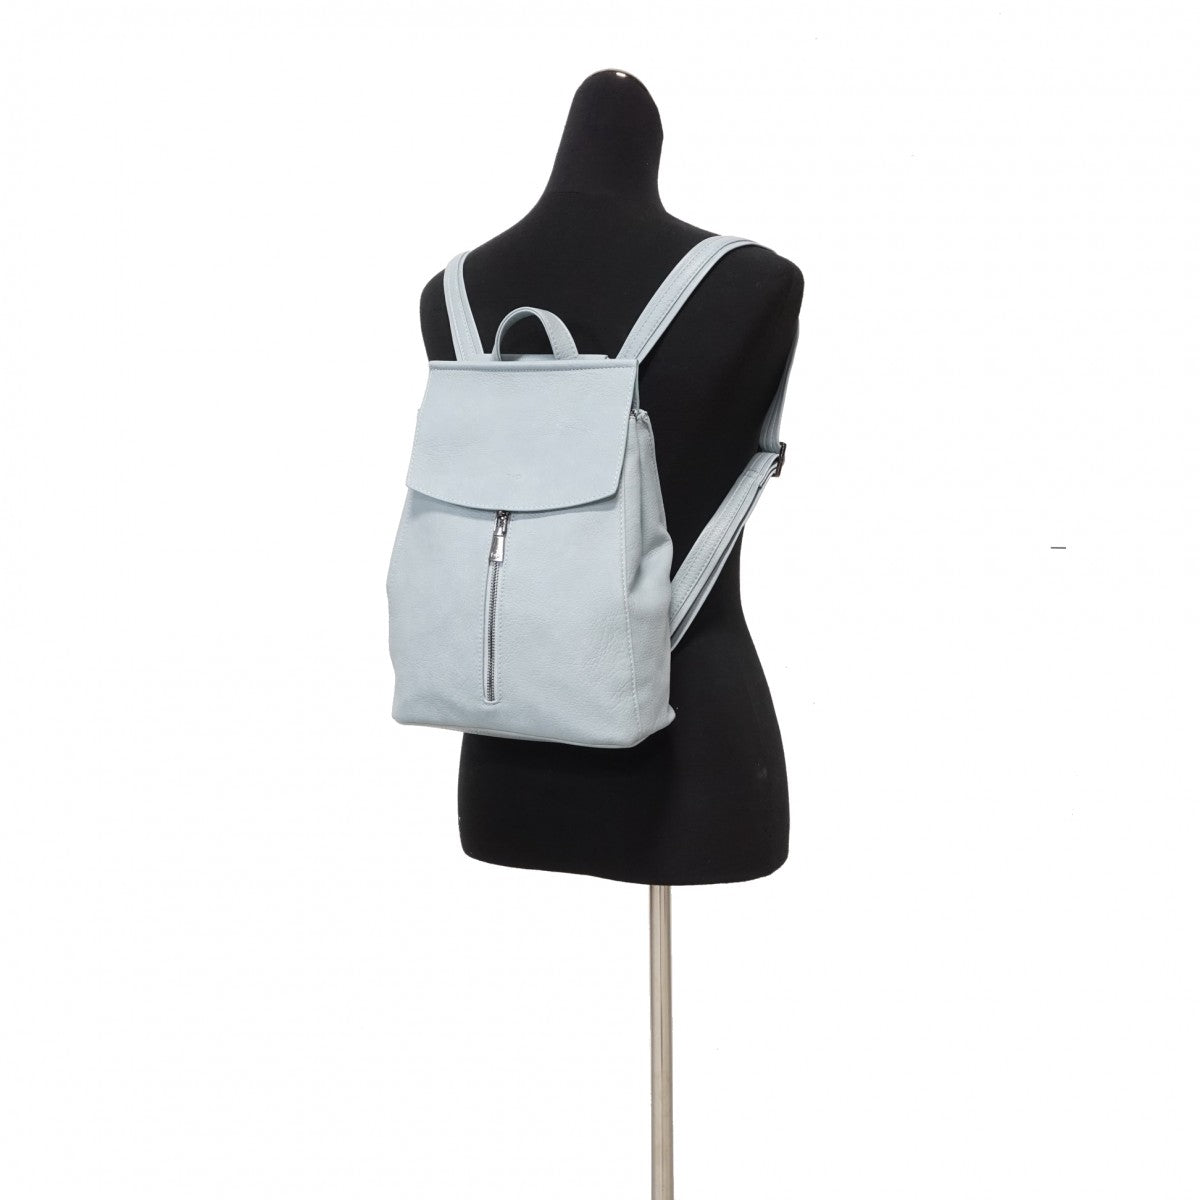 Backpack, 2 colour options